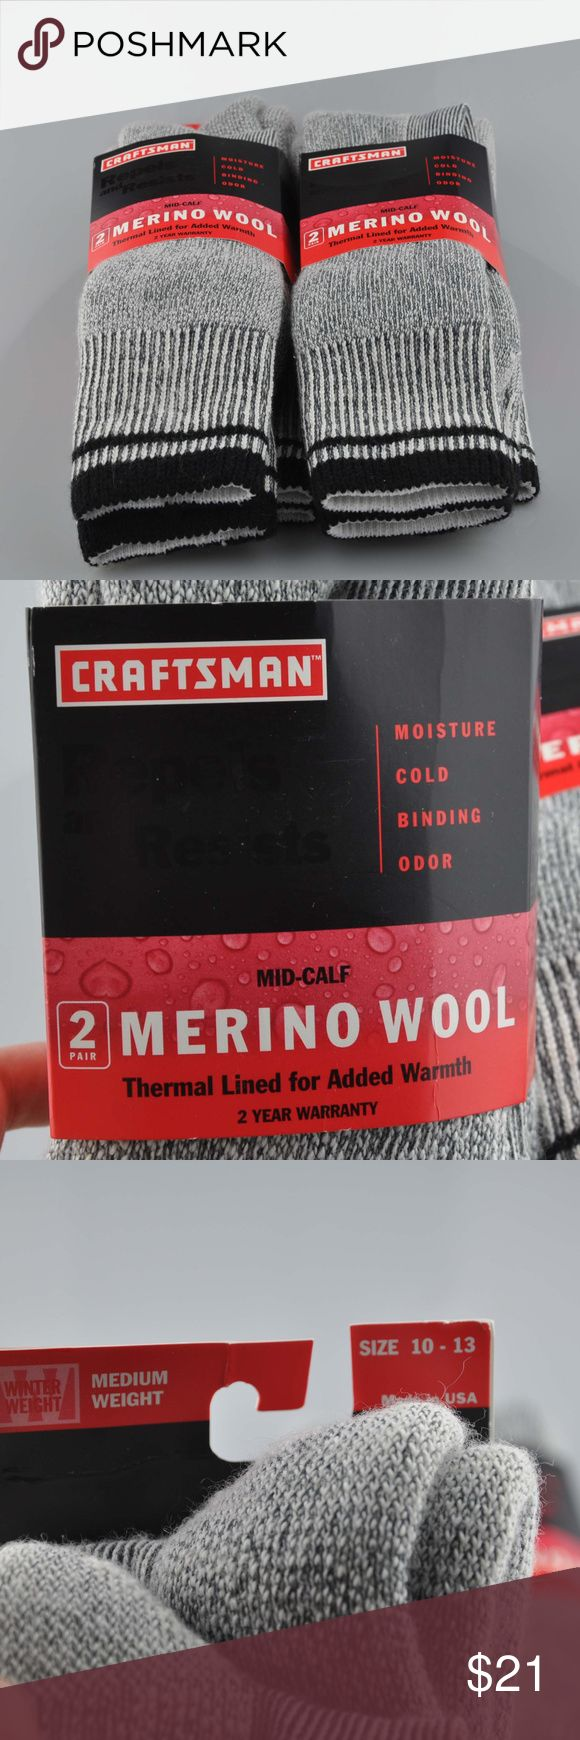 Lot of 2 Men's Craftsman Merino Wool Socks Sz: L Sock are brand new, never been worn. Listing for two packages of socks with two pairs in each for a total of four pairs.  Size L 10 - 13 Medium Weight Charcoal grey and black color Merino Wool Mid Calf  Thermal Lined for warmth Wicking keeps feet dry Smooth toe seam Medium Weight Acrylic/wool blend Fully cushioned for all day comfort  65% acrylic 20% Merino/wool blend 14$ stretch nylon 1% spandex  Turn inside out and machine wash with like…